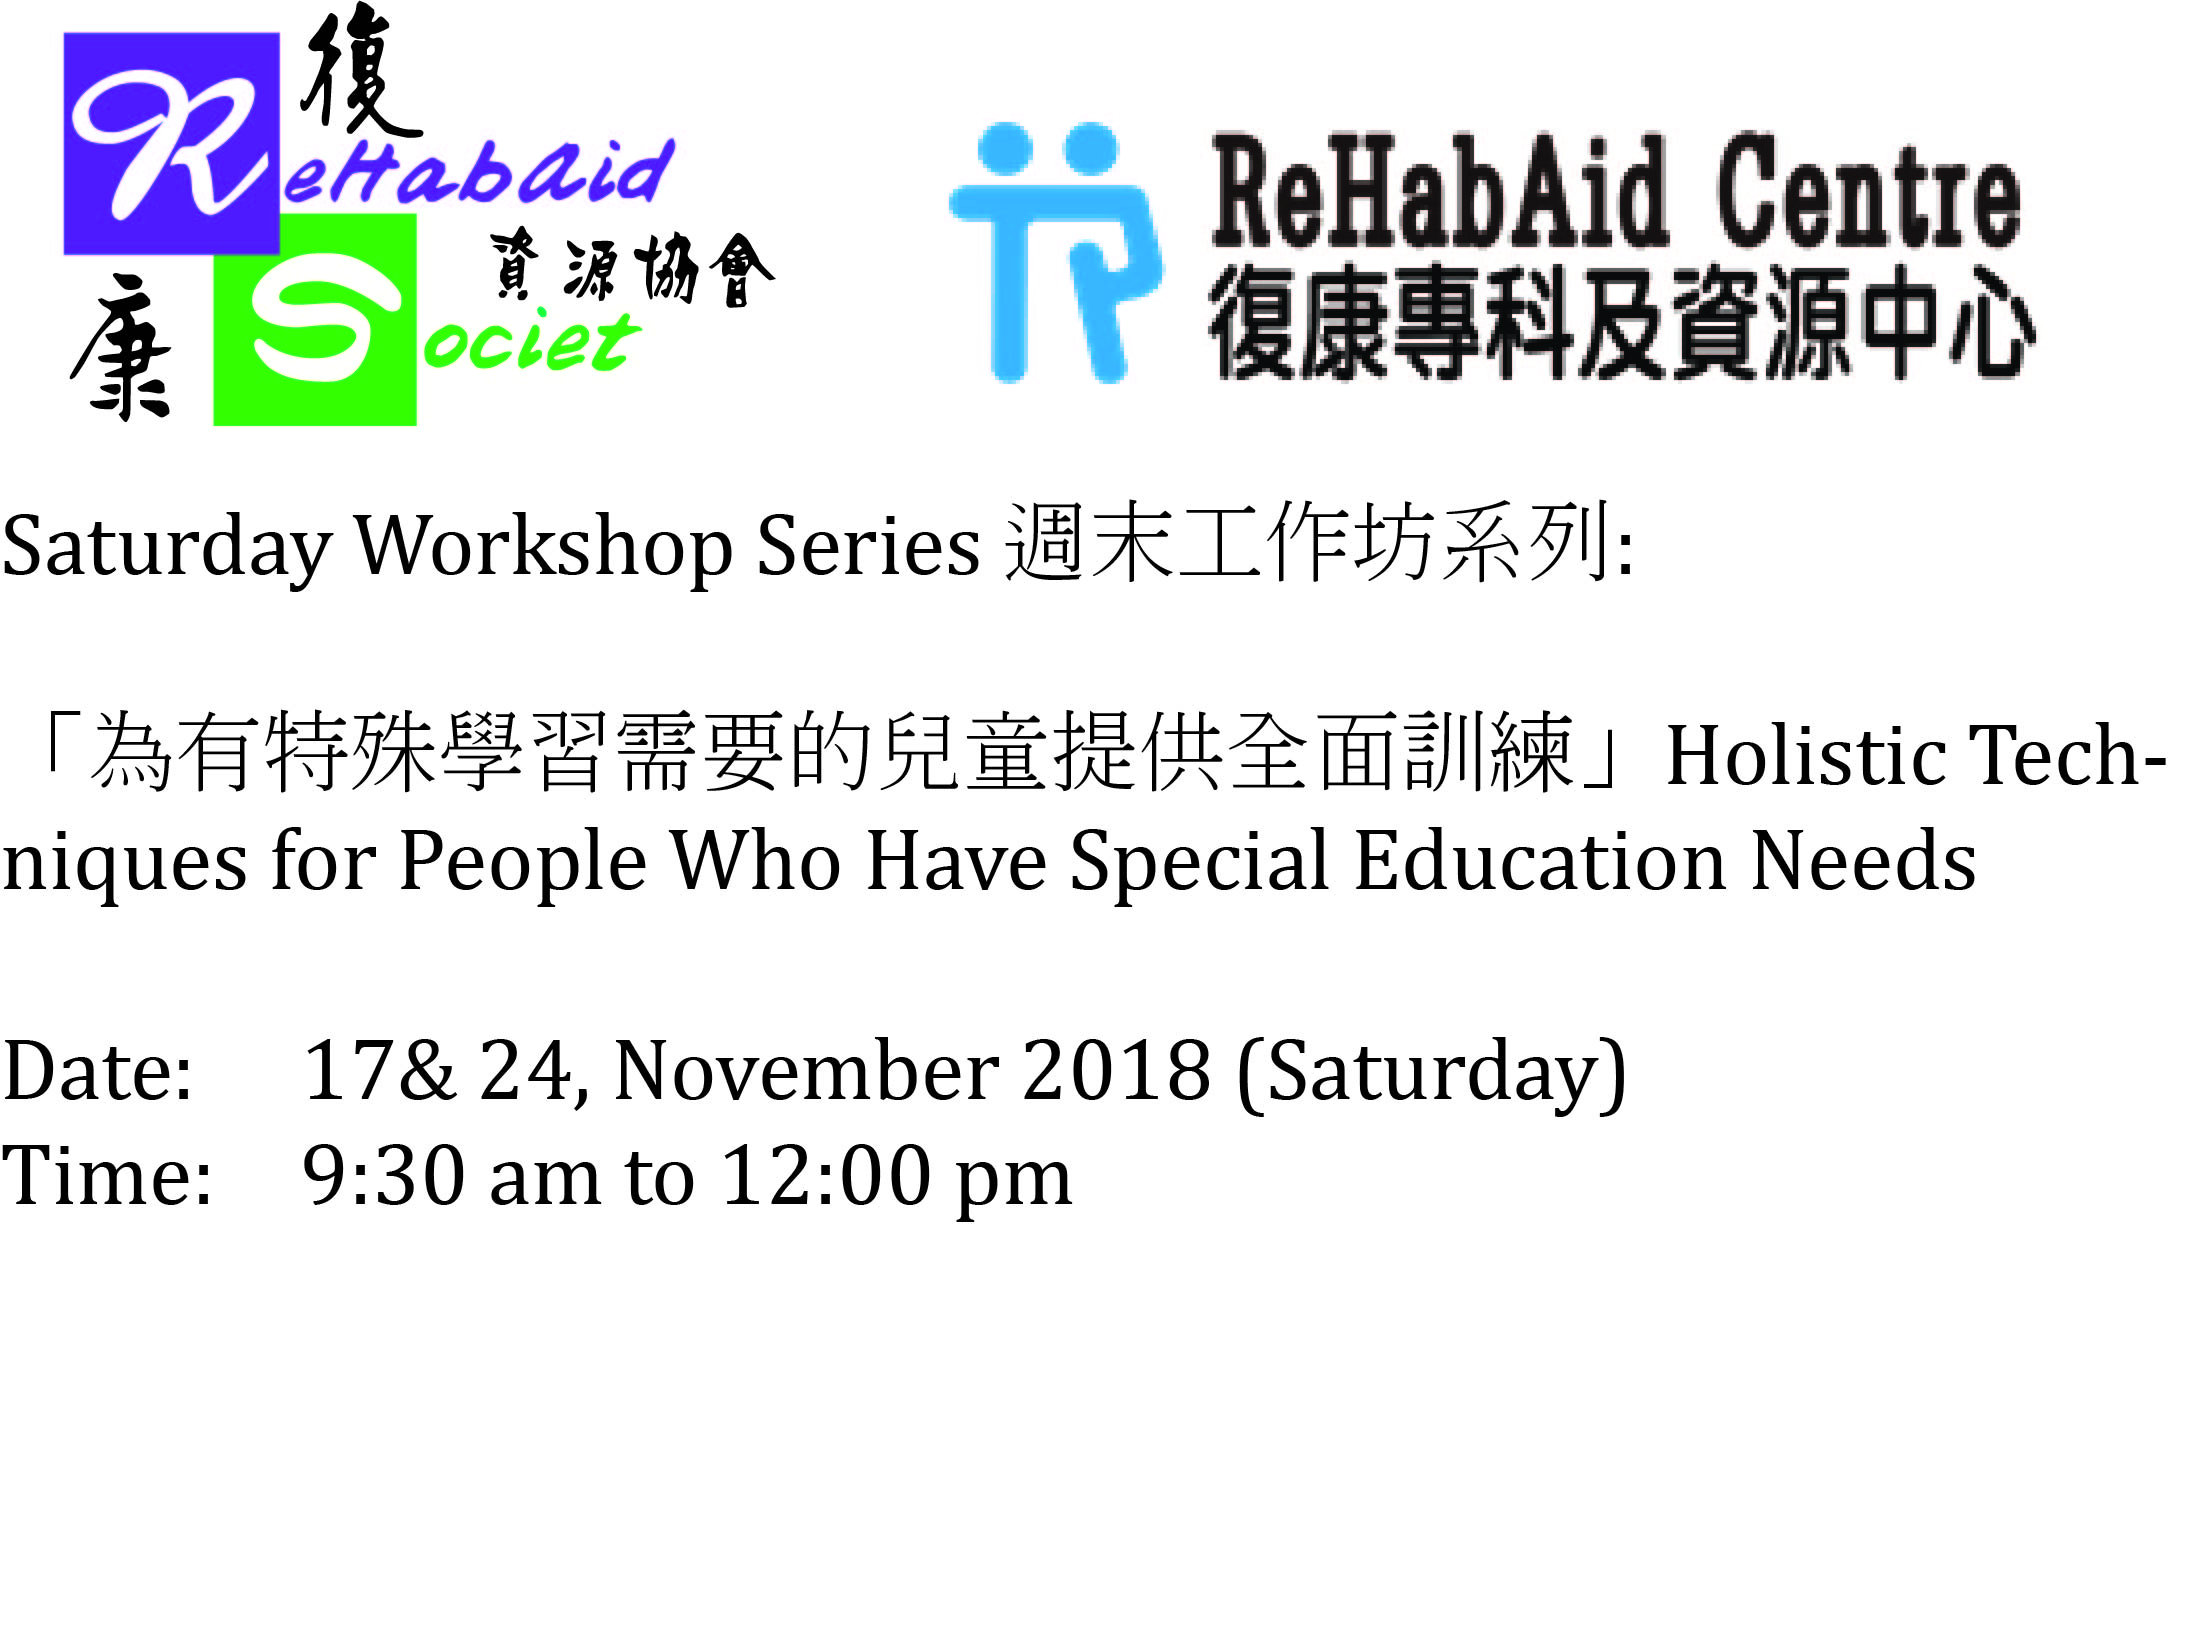 Saturday Workshop Series - Holistic Techniques for People Who Have Special Educational Needs